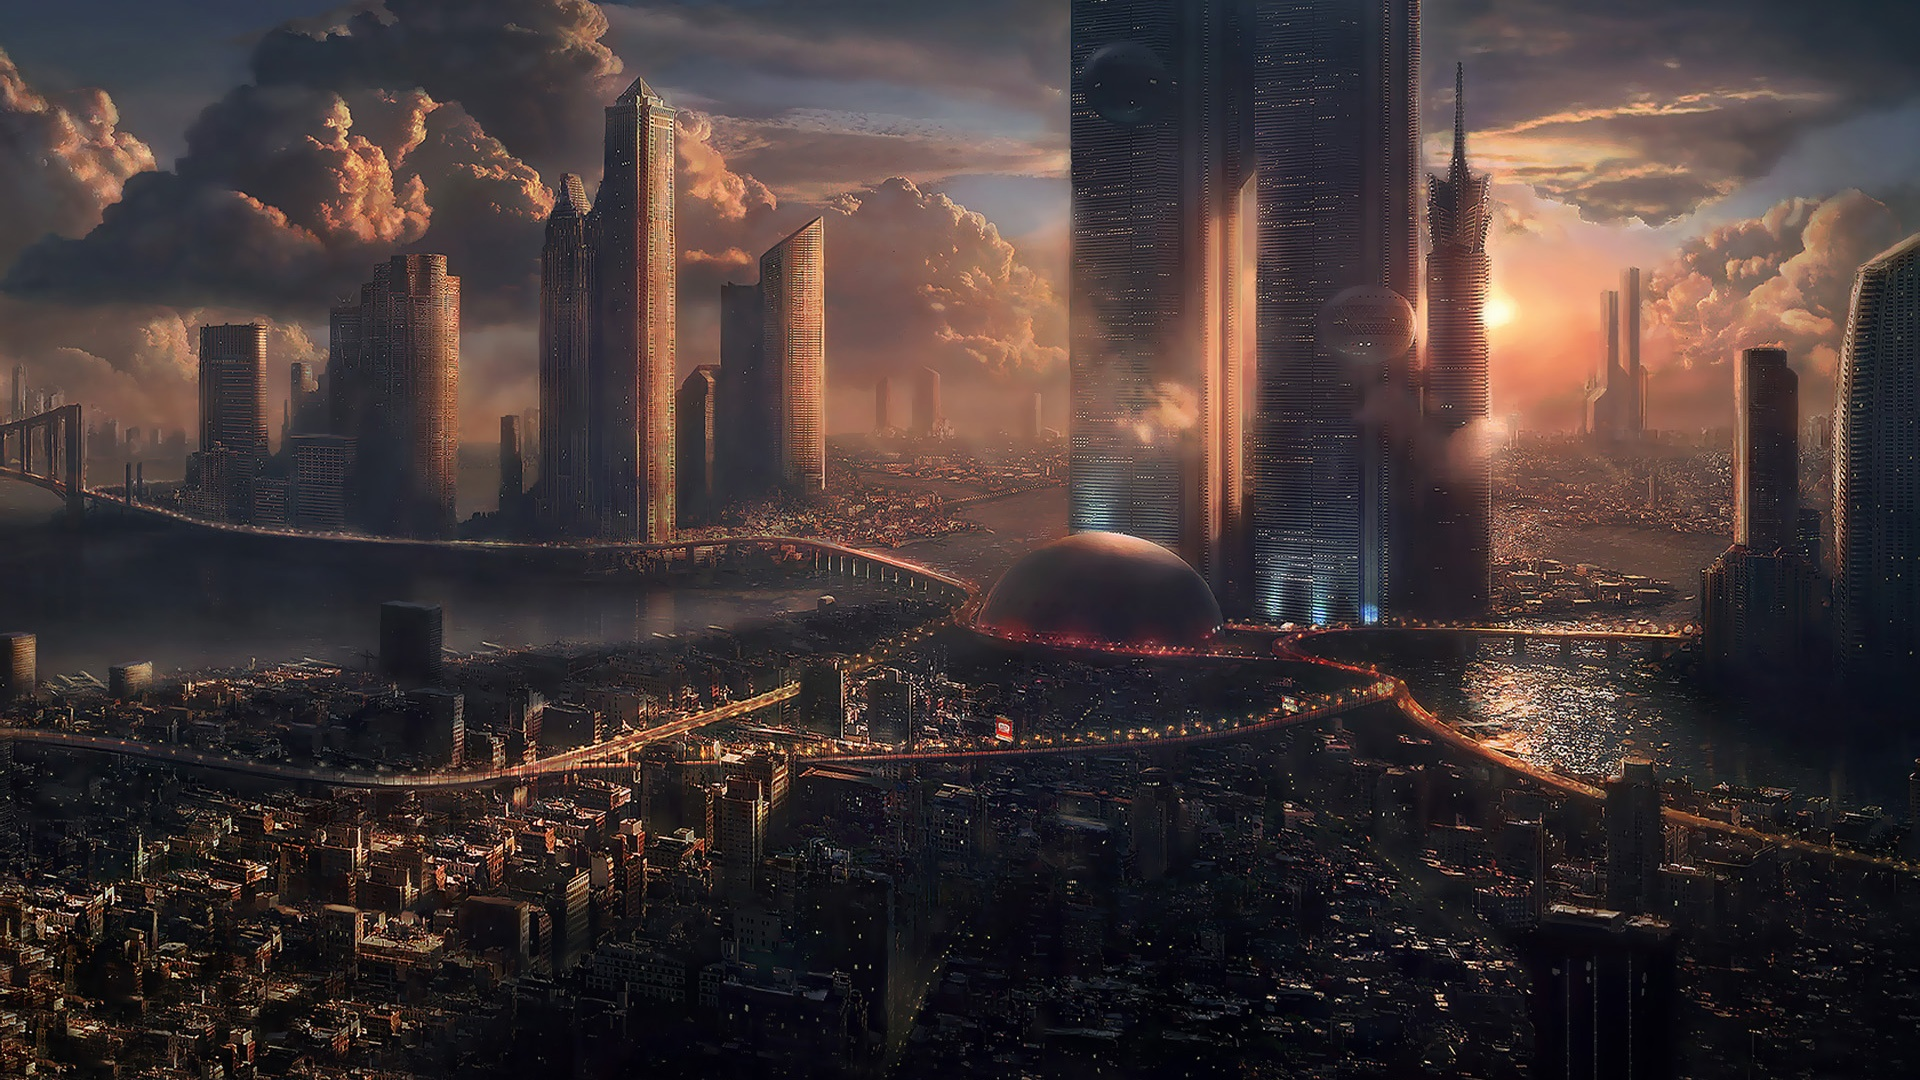 50 Futuristic City Wallpapers 1920x1080